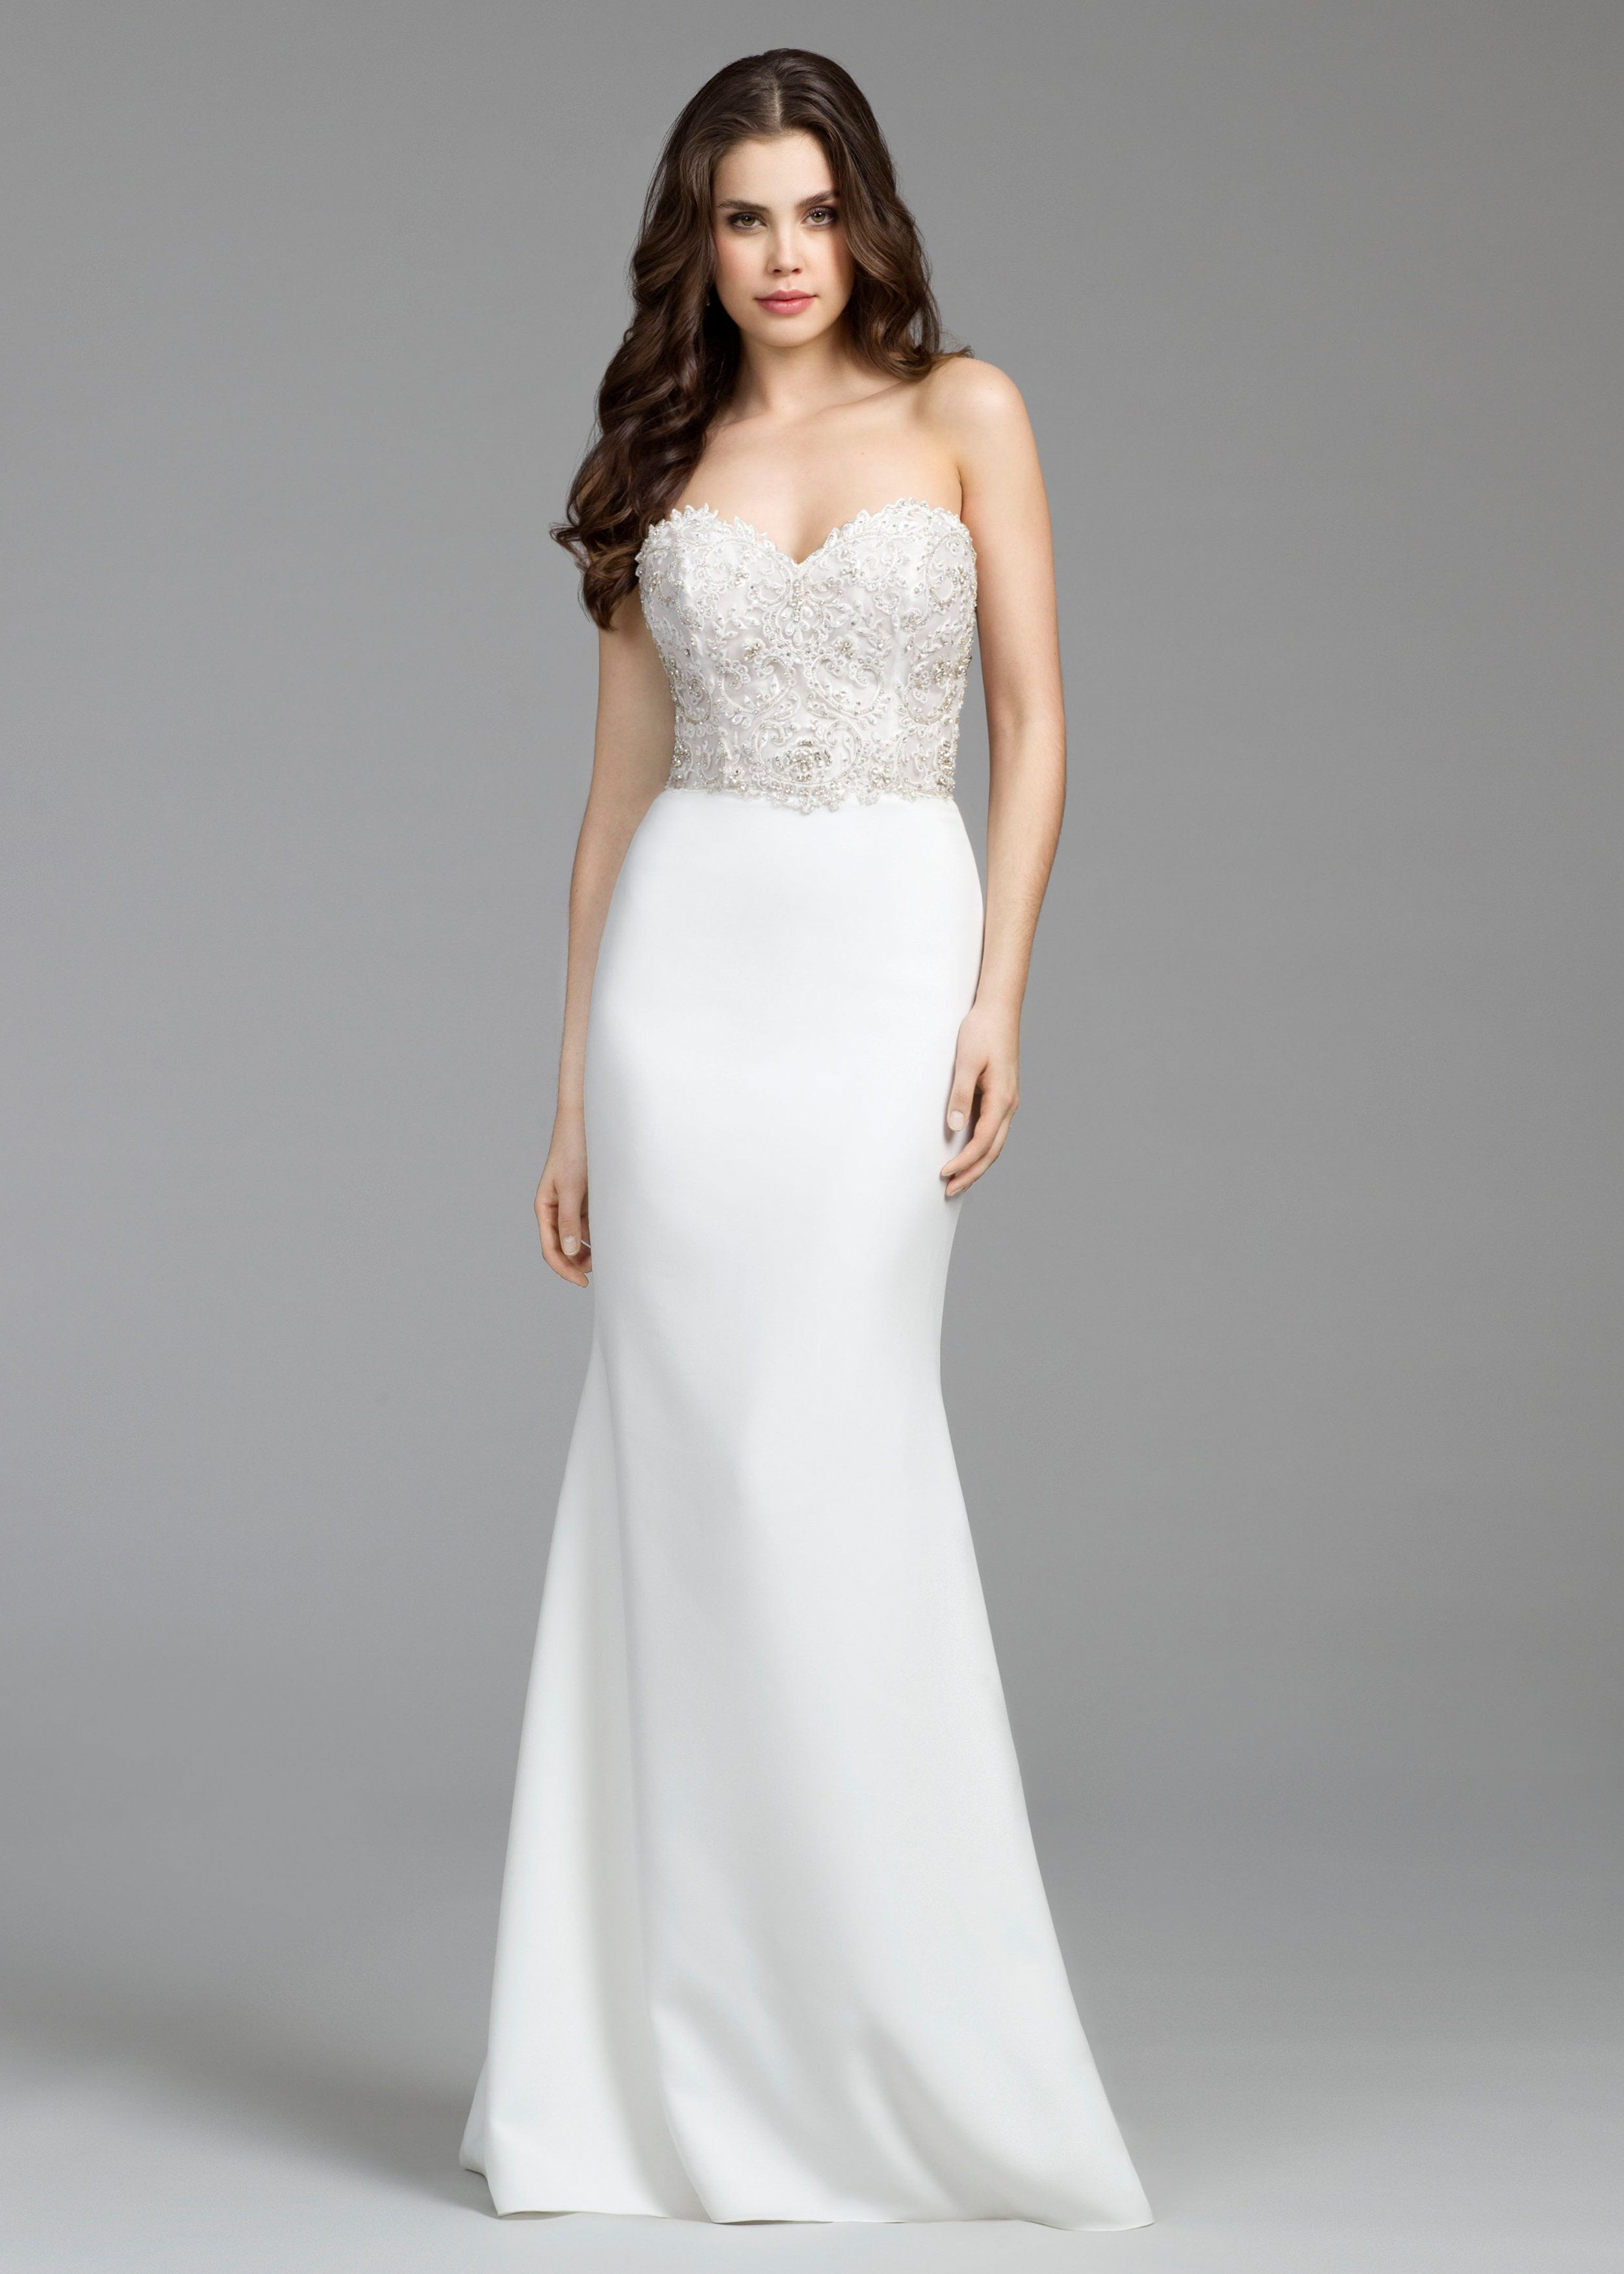 4e4414f5f Tara Keely Style #2655, Sz. 12 Diamond White/Natural/Crepe Silk Original  Price $2,450 SA Price $1,450 S13422